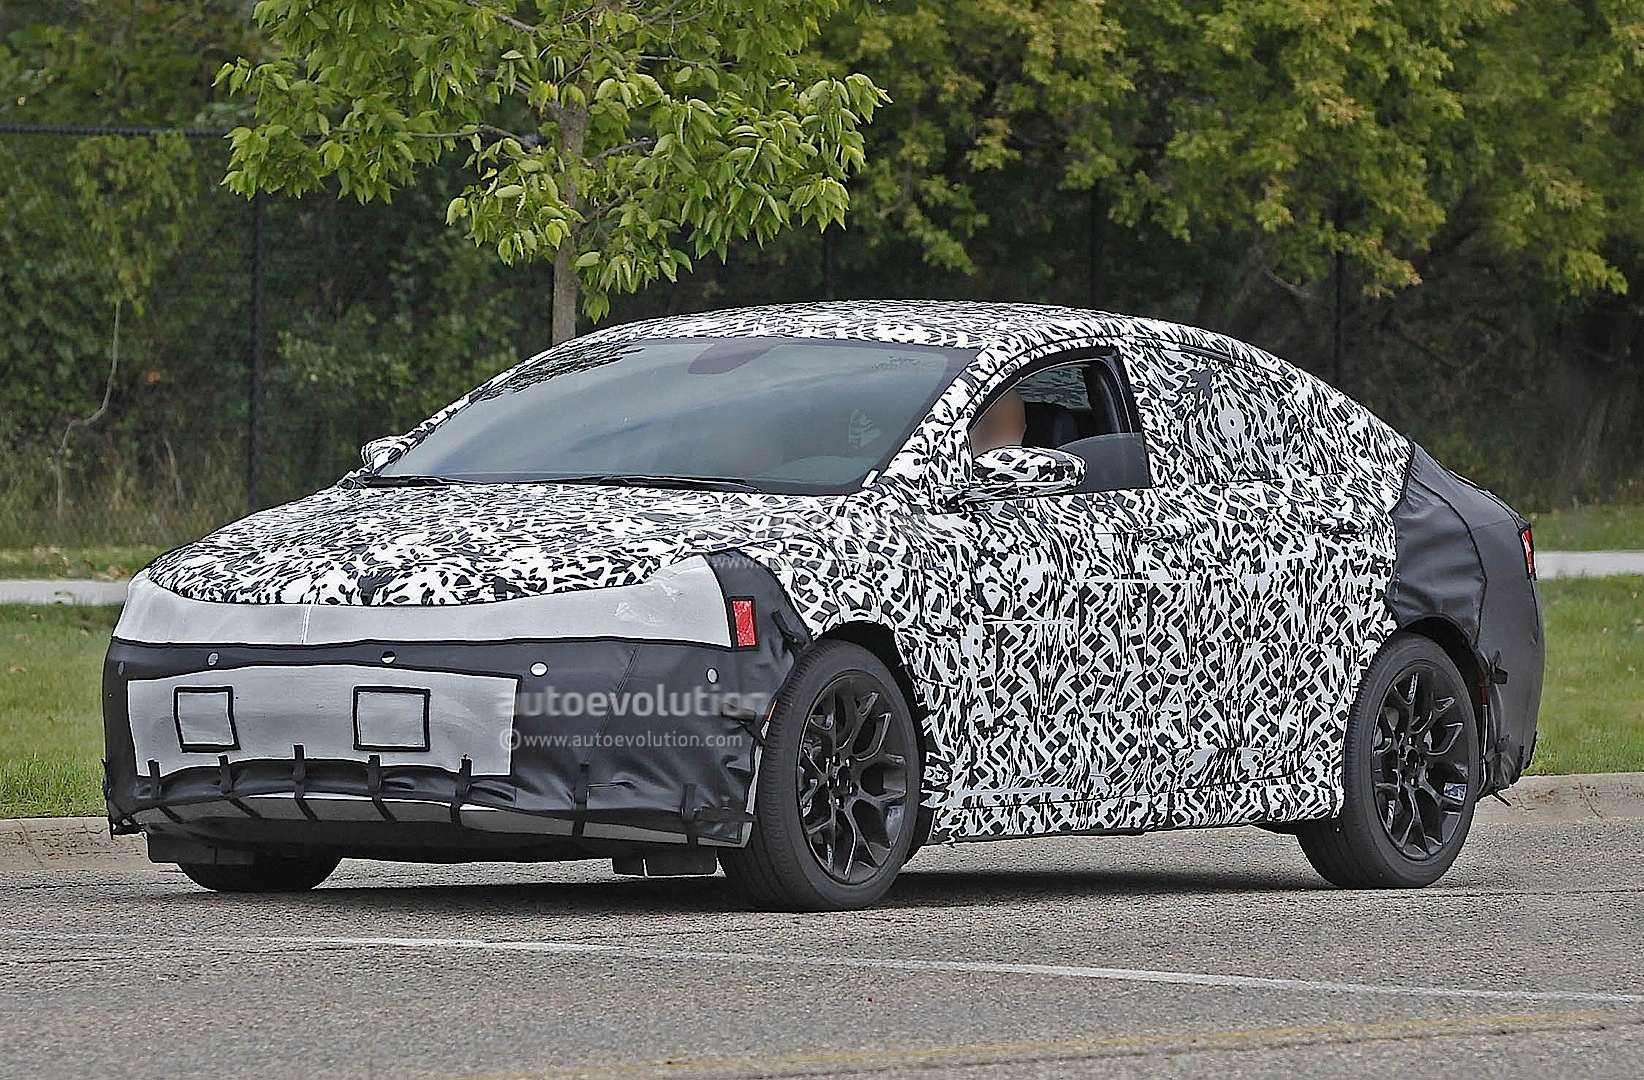 2015 Chrysler 200 Convertible And Spy Shots .html | Autos